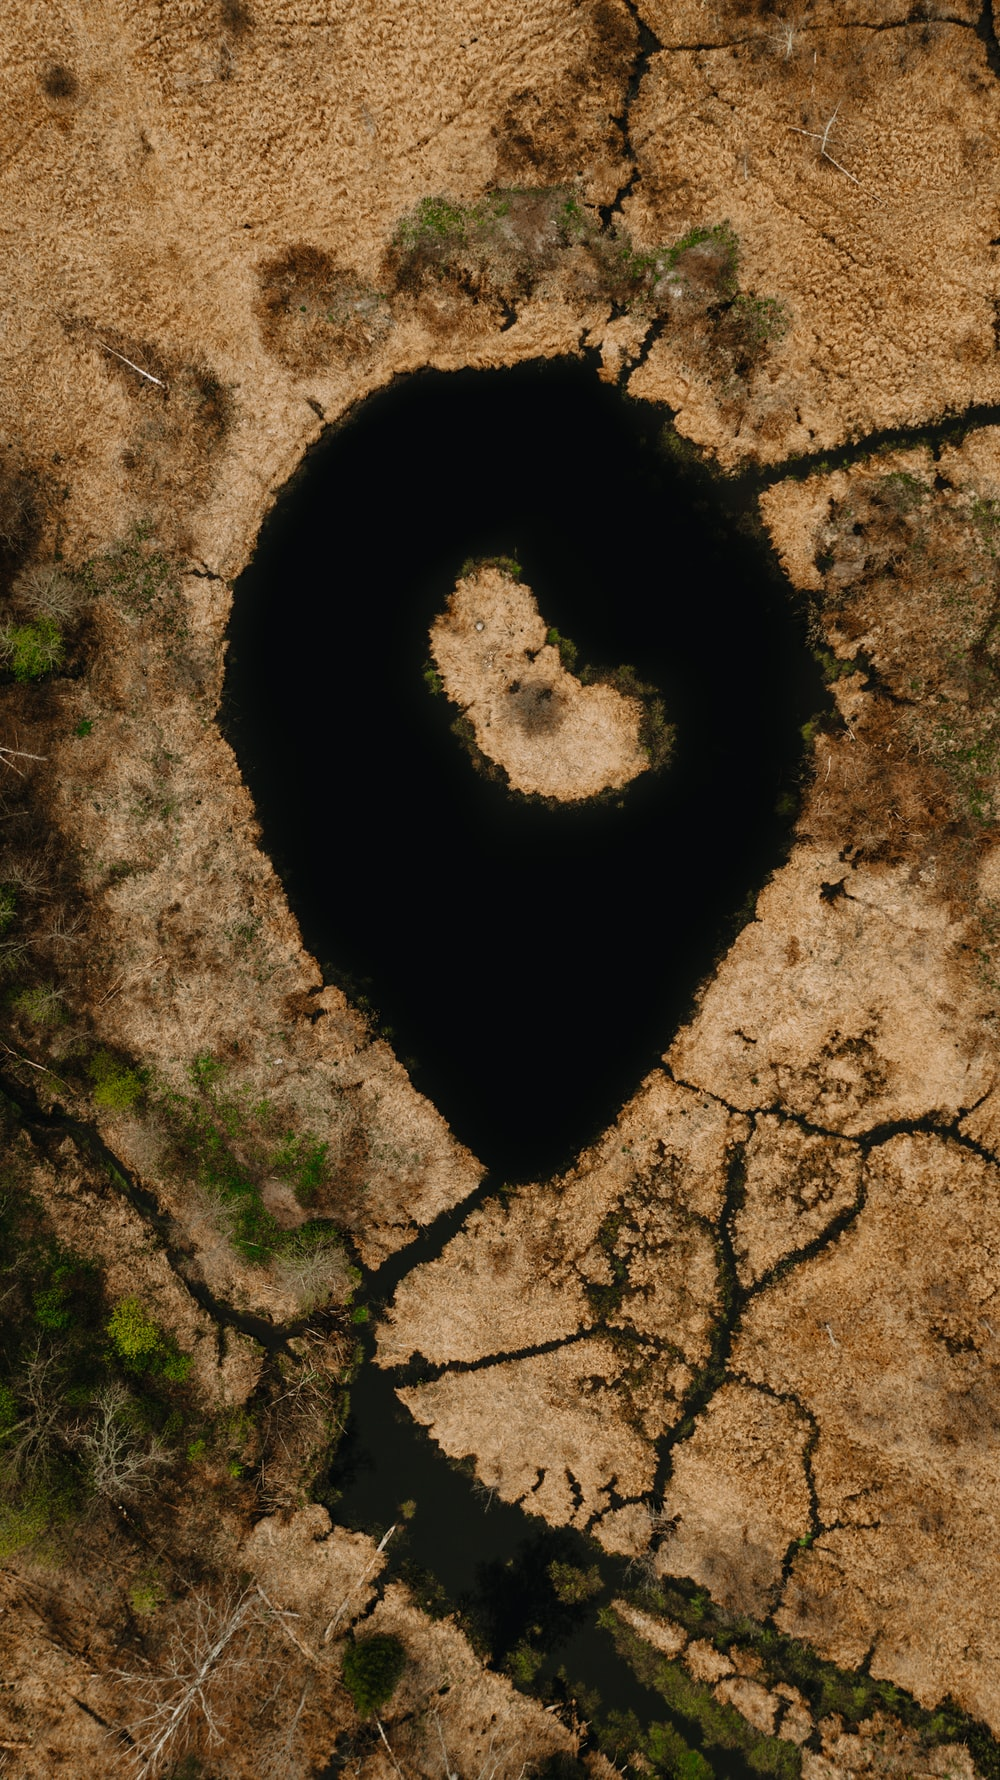 heart shaped hole on brown soil